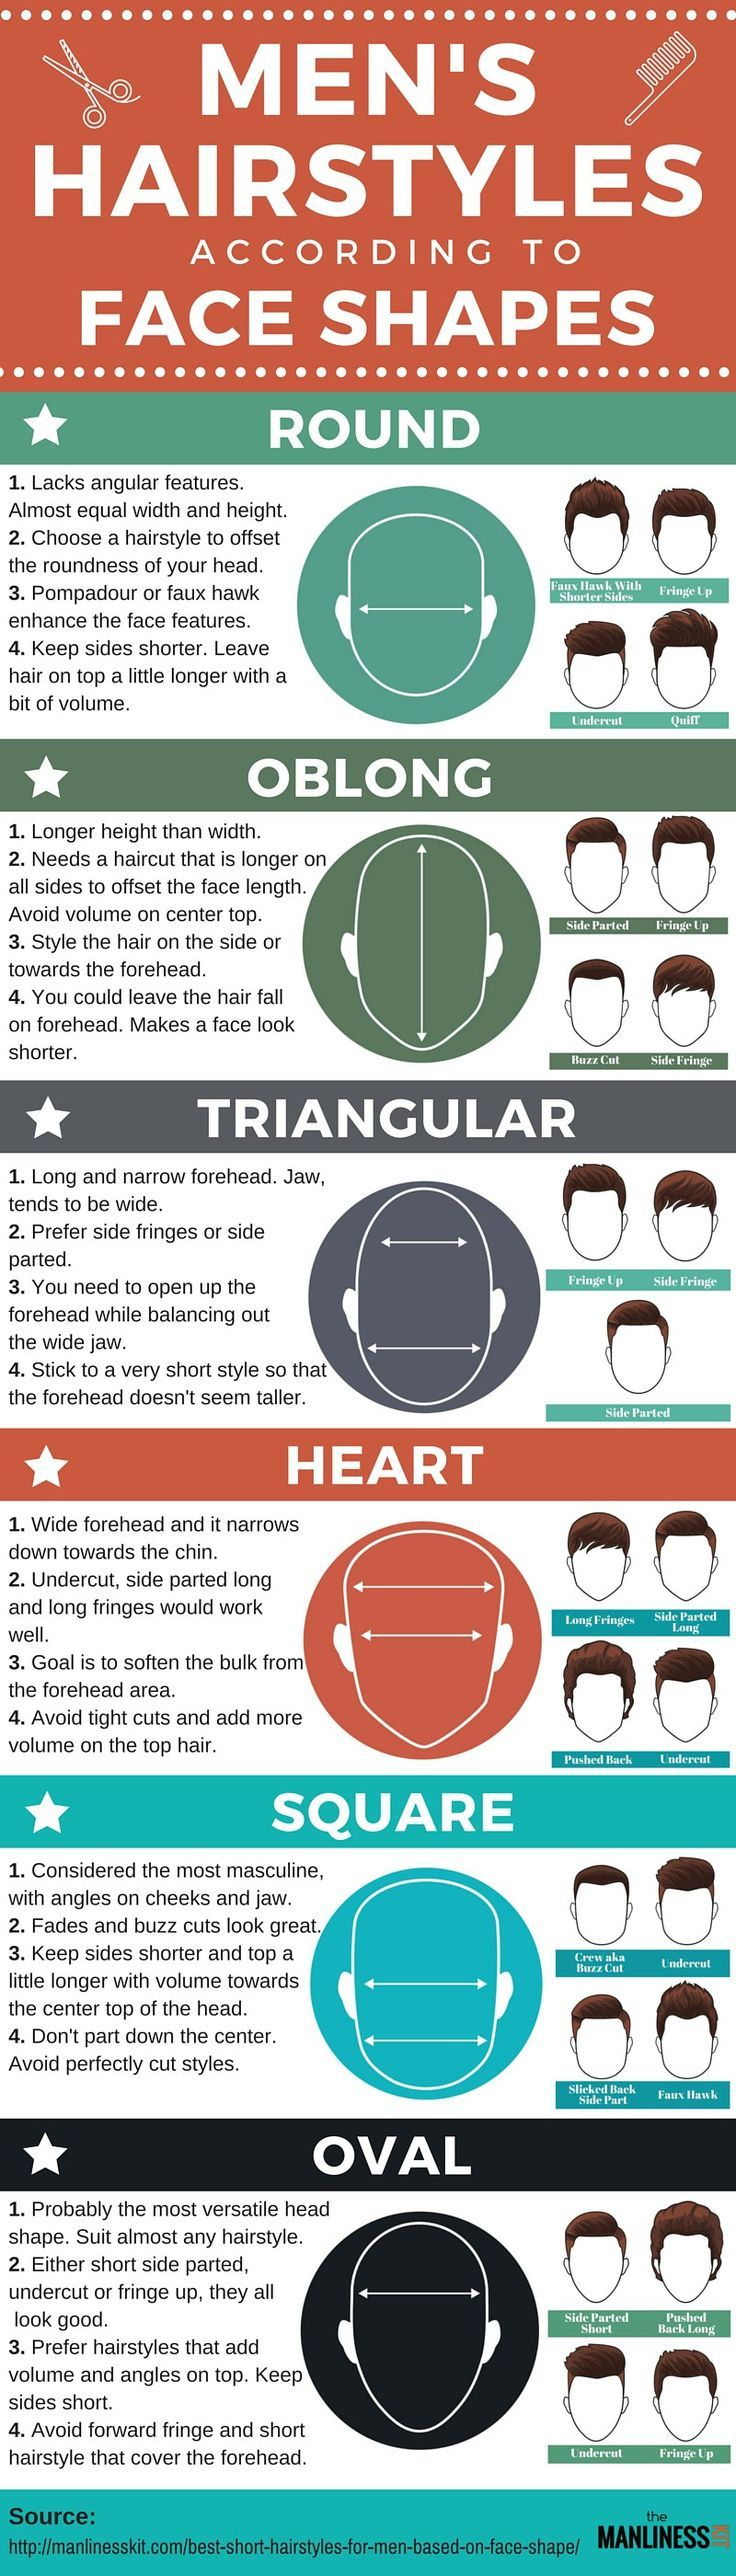 http://manlinesskit.com/best-short-hairstyles-for-men-based-on-face-shape/ Best… https://uk.pinterest.com/uksportoutdoors/men-outdoor-hiking-camping-wear/